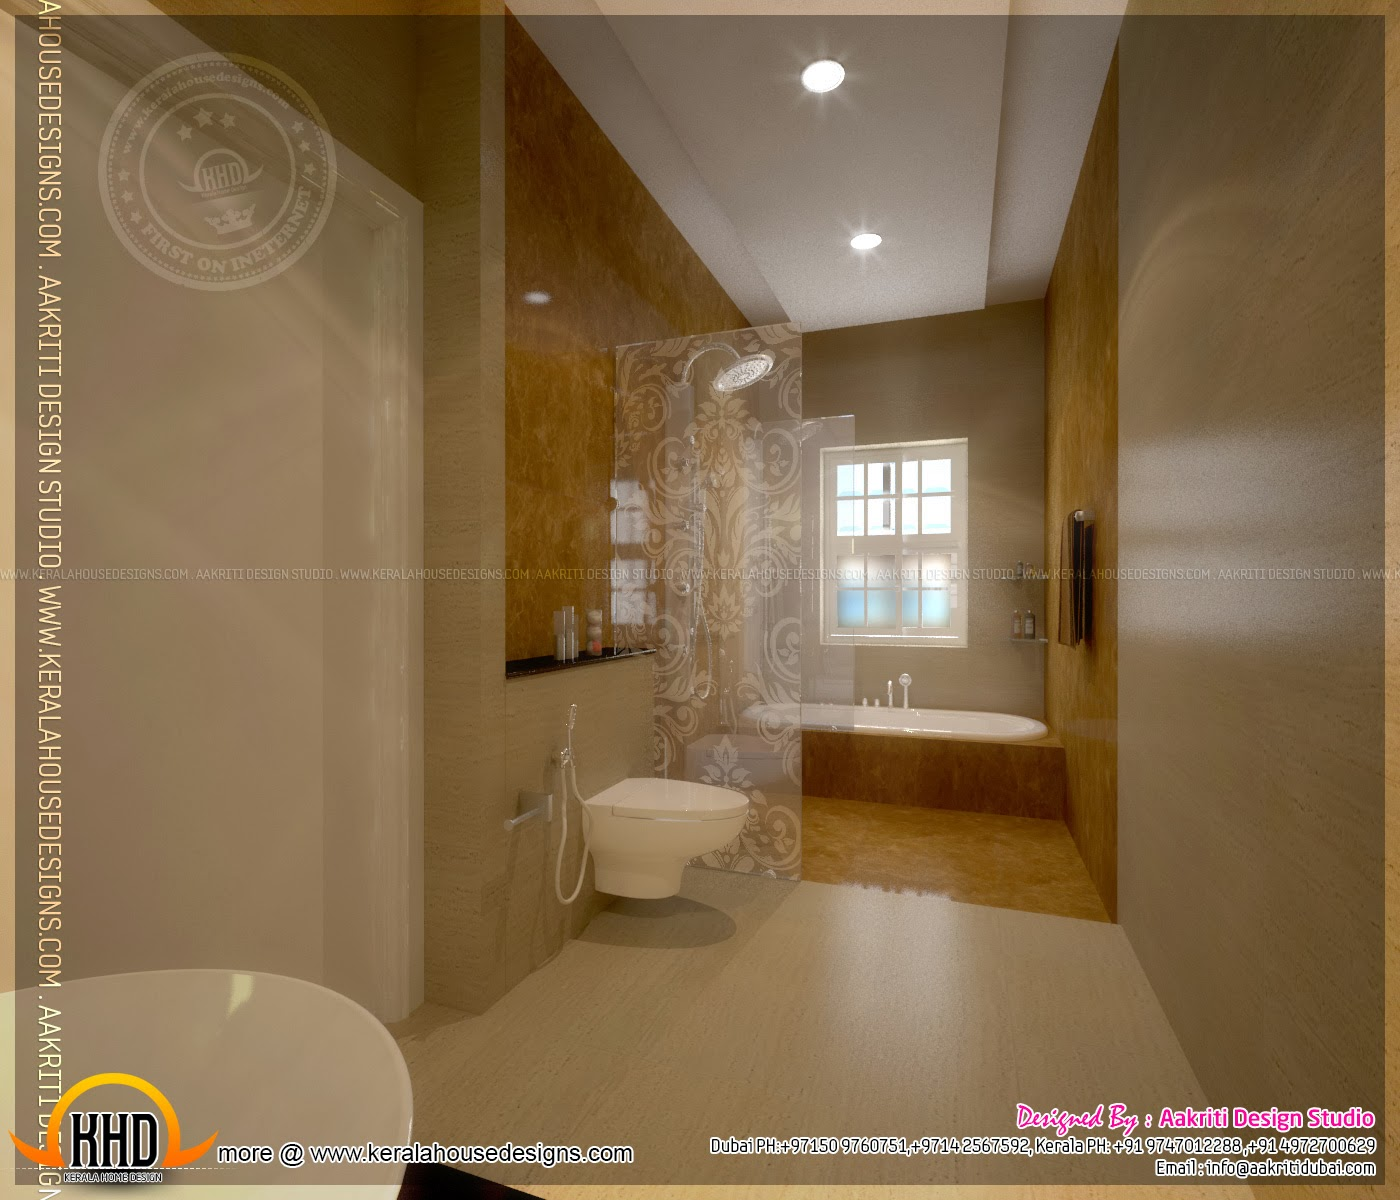 Master bedroom and bathroom interior design kerala home for Bathroom interior design dubai